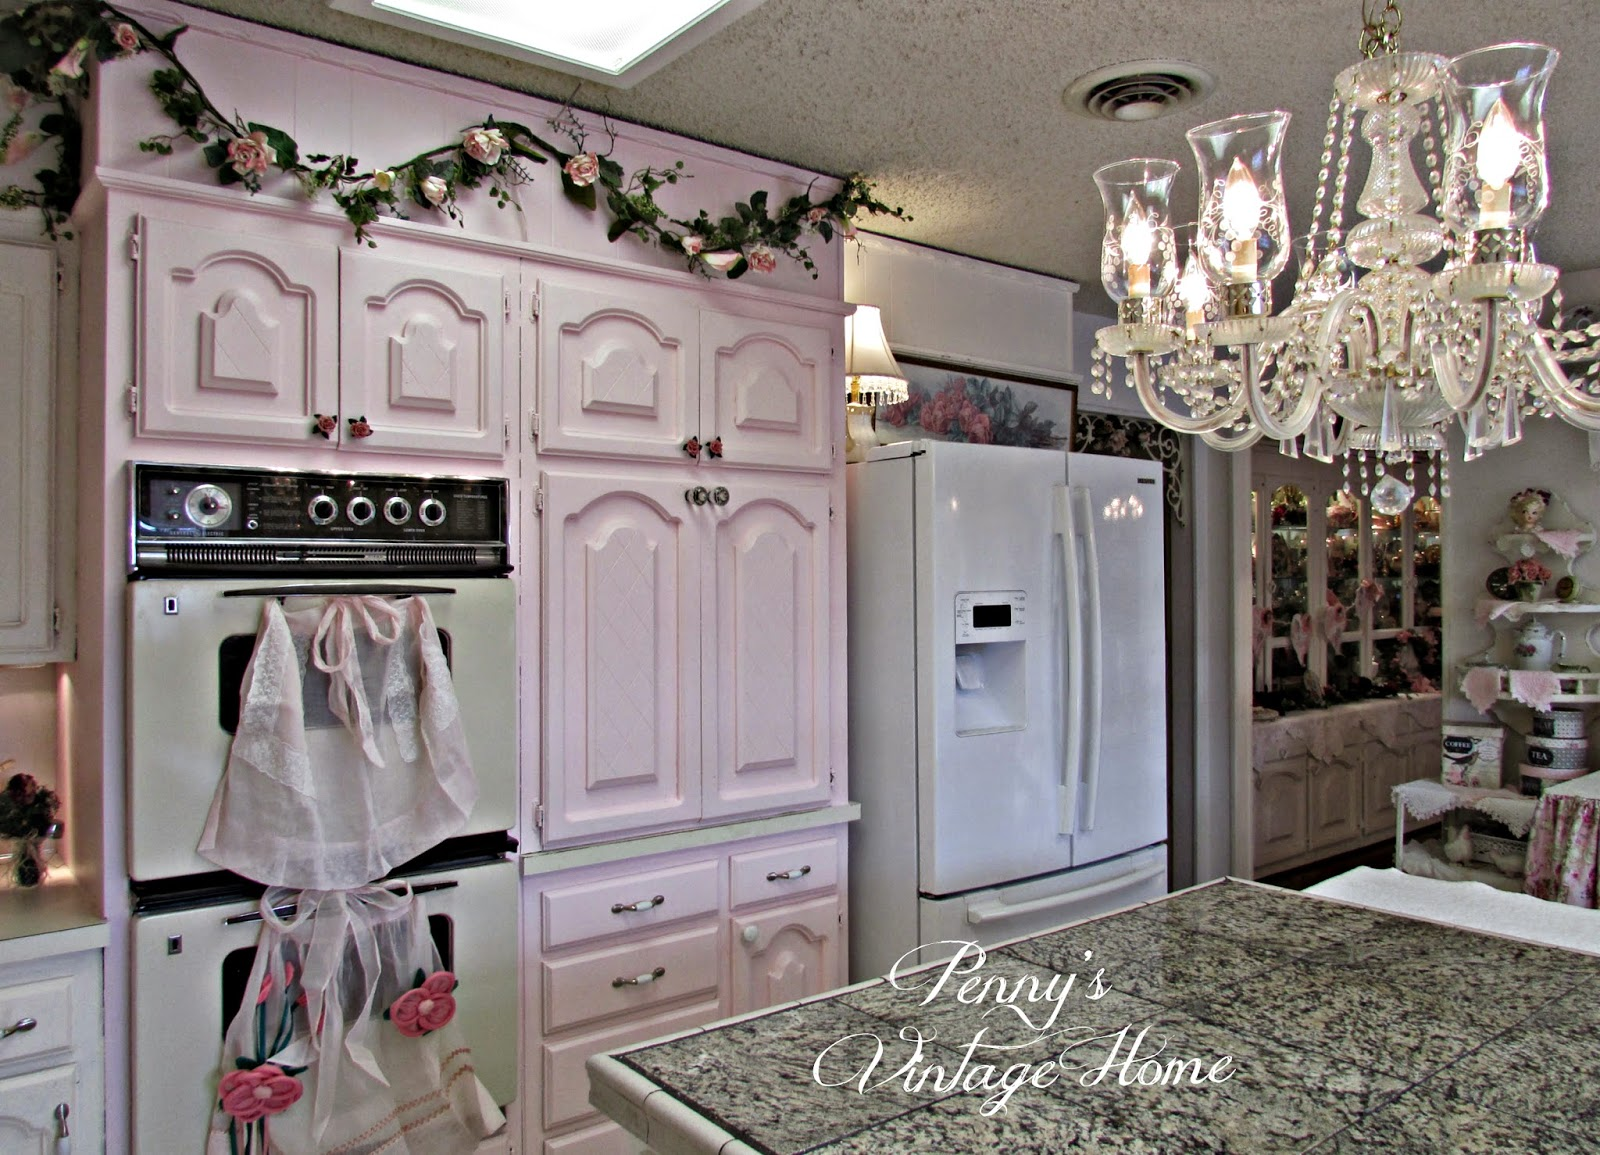 Penny 39 s vintage home pink kitchen cabinets - Pink kitchen cabinets ...